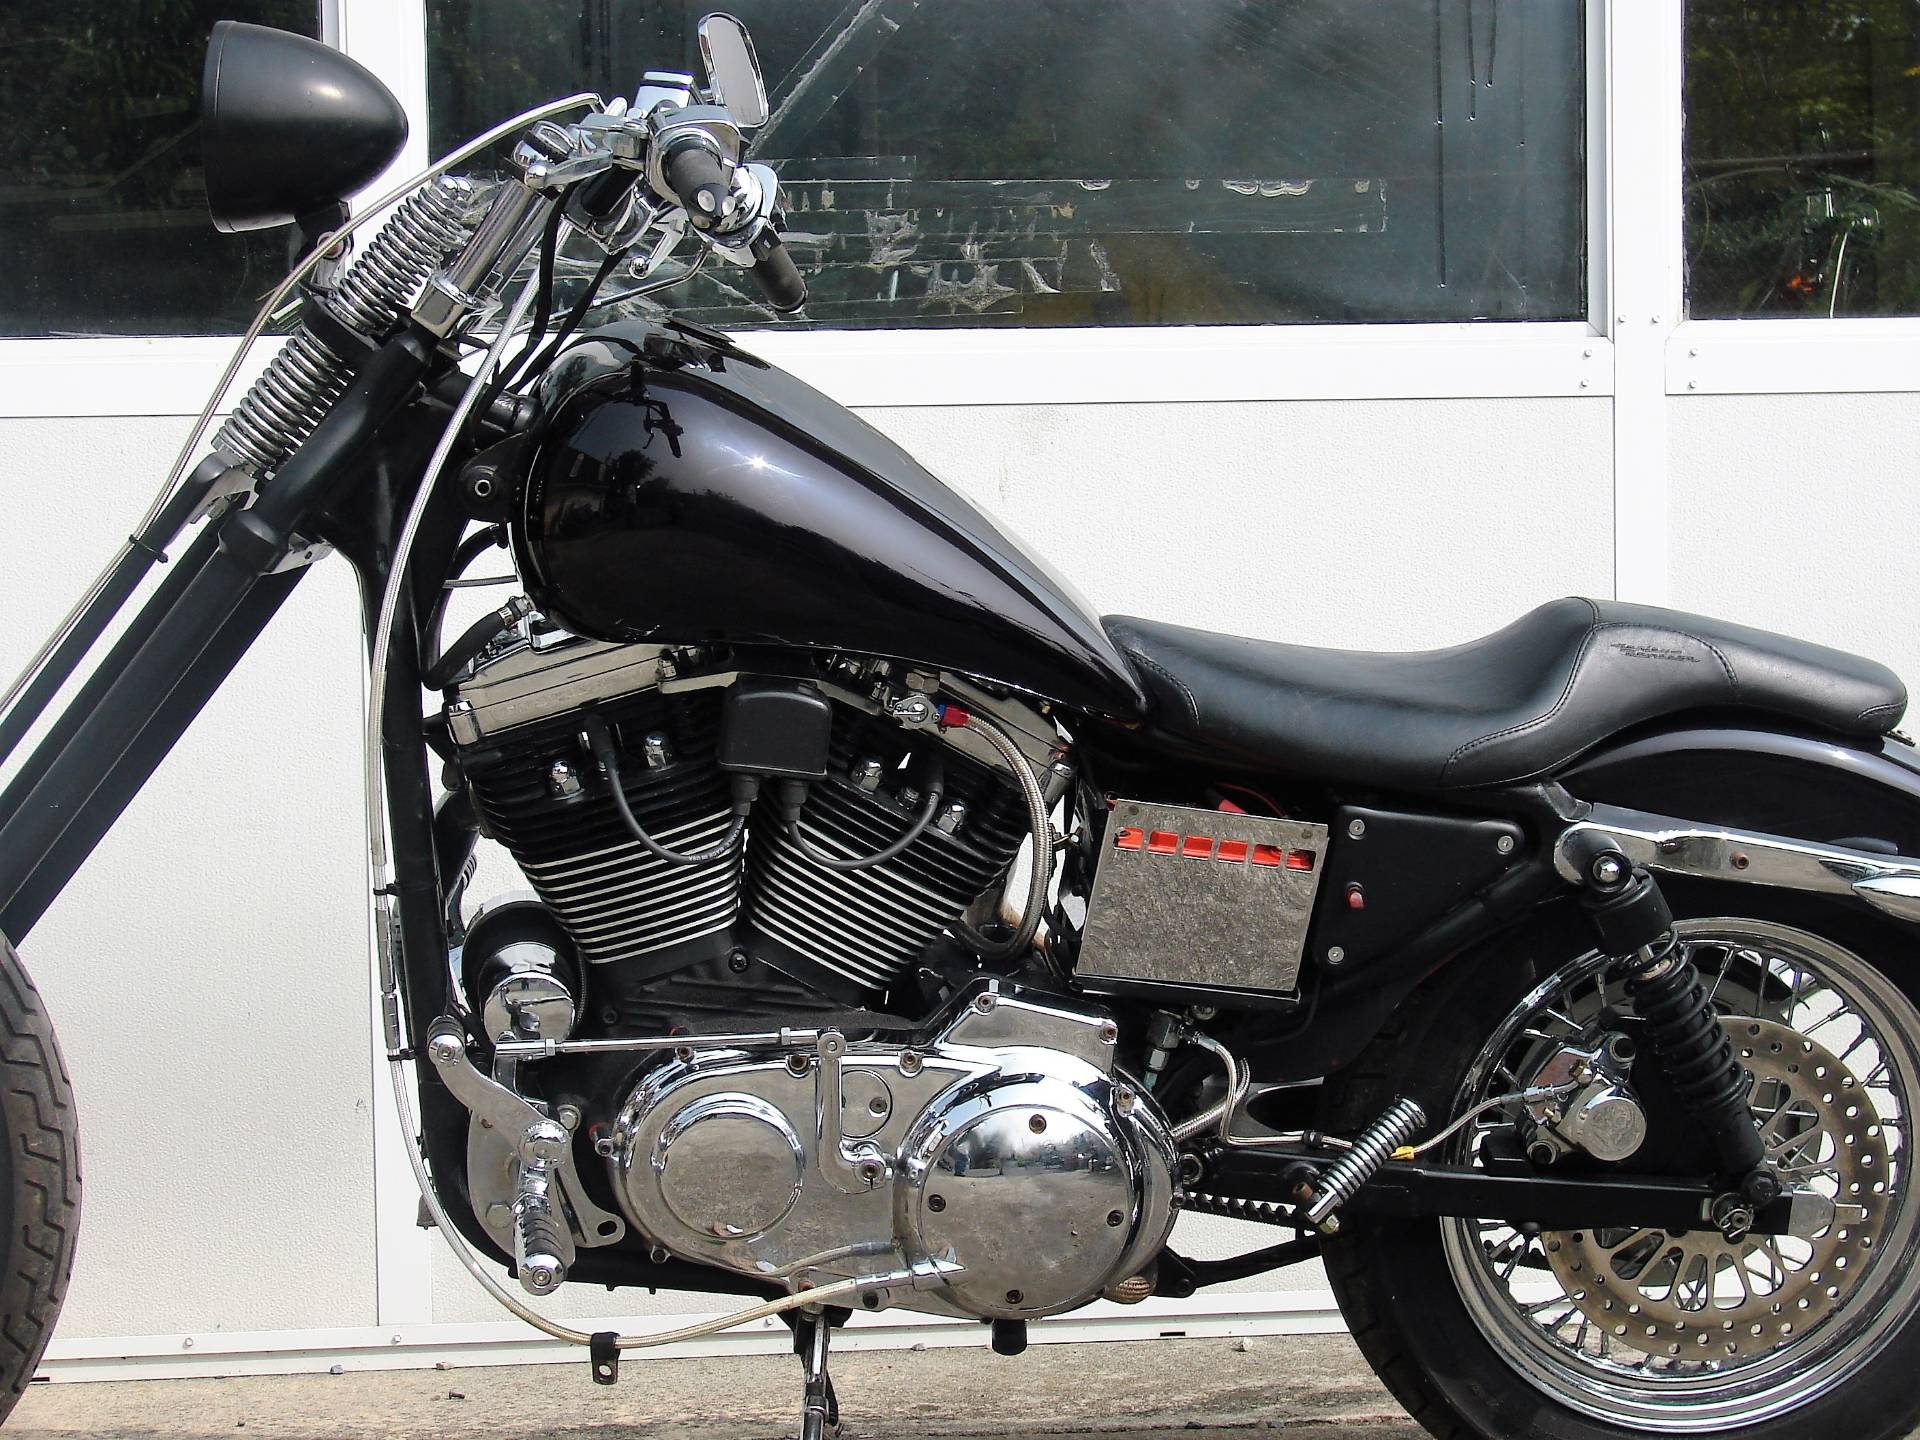 1995 Harley-Davidson XL 1200 Sportster (Conversion) in Williamstown, New Jersey - Photo 15